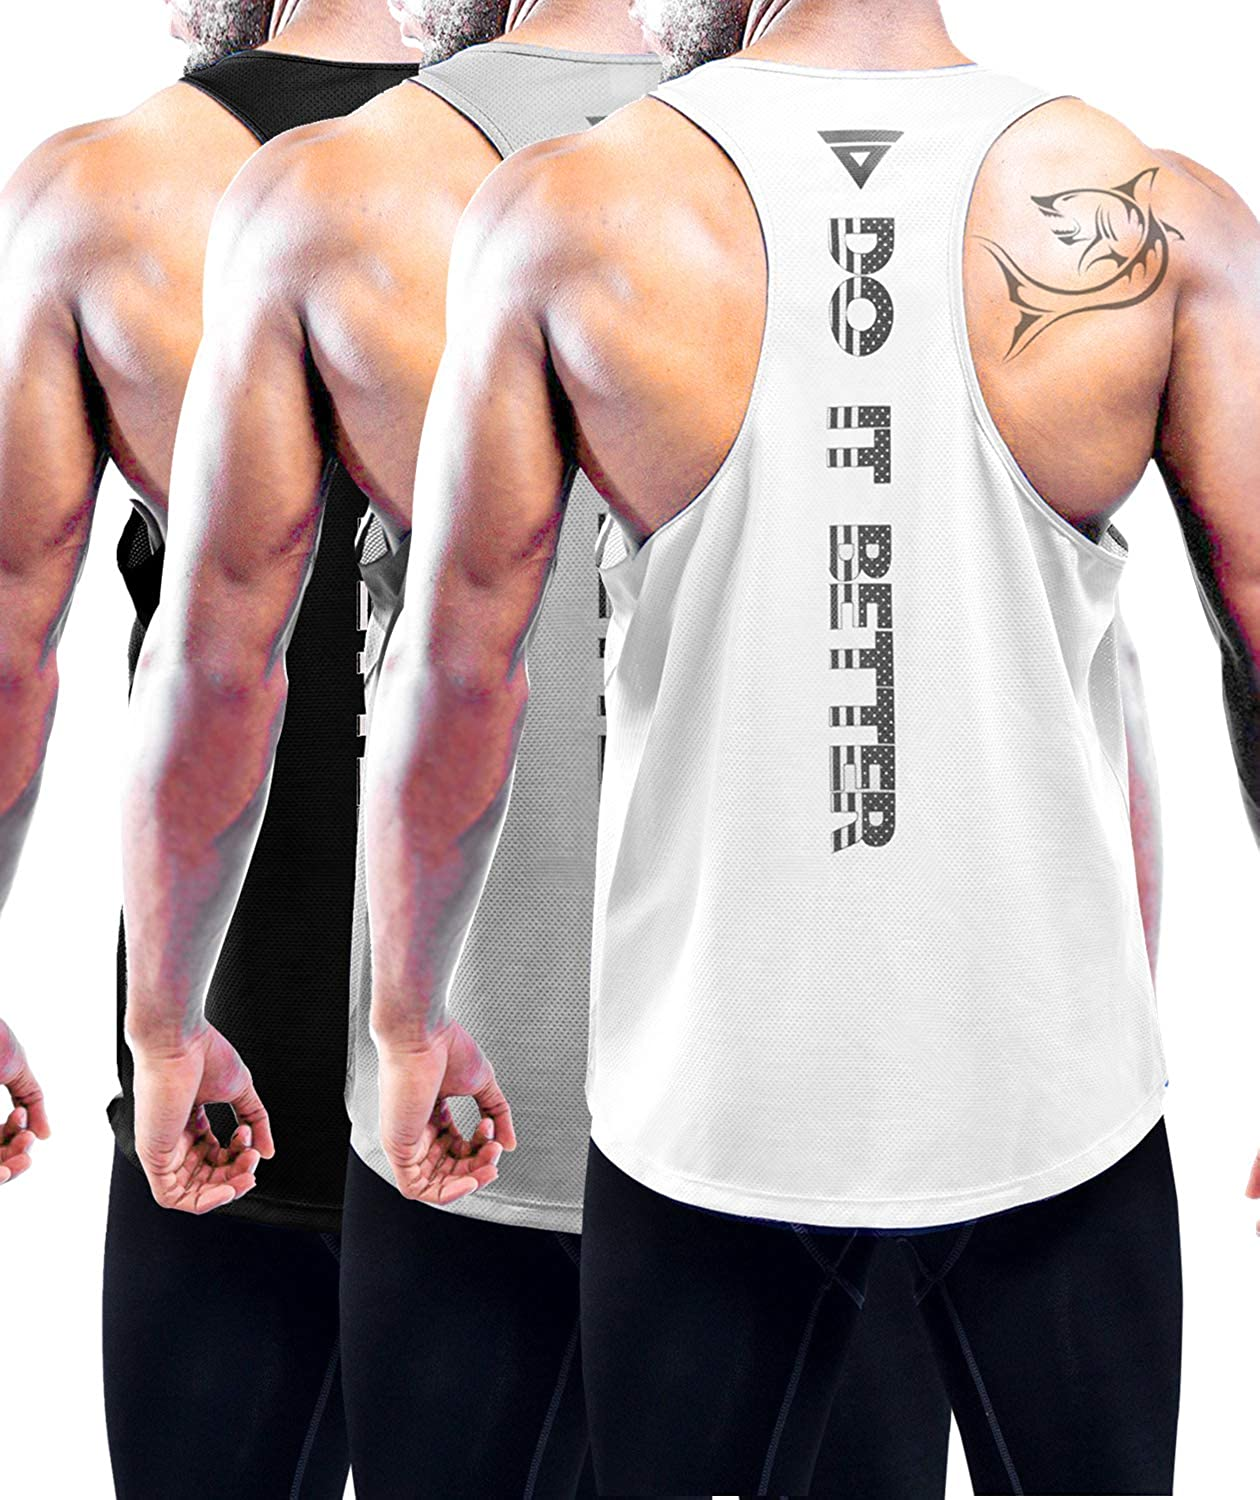 Mens Workout Tank Top Dry Fit Cool Gym Athletic Training Sleeveless Bodybuilding Shirts